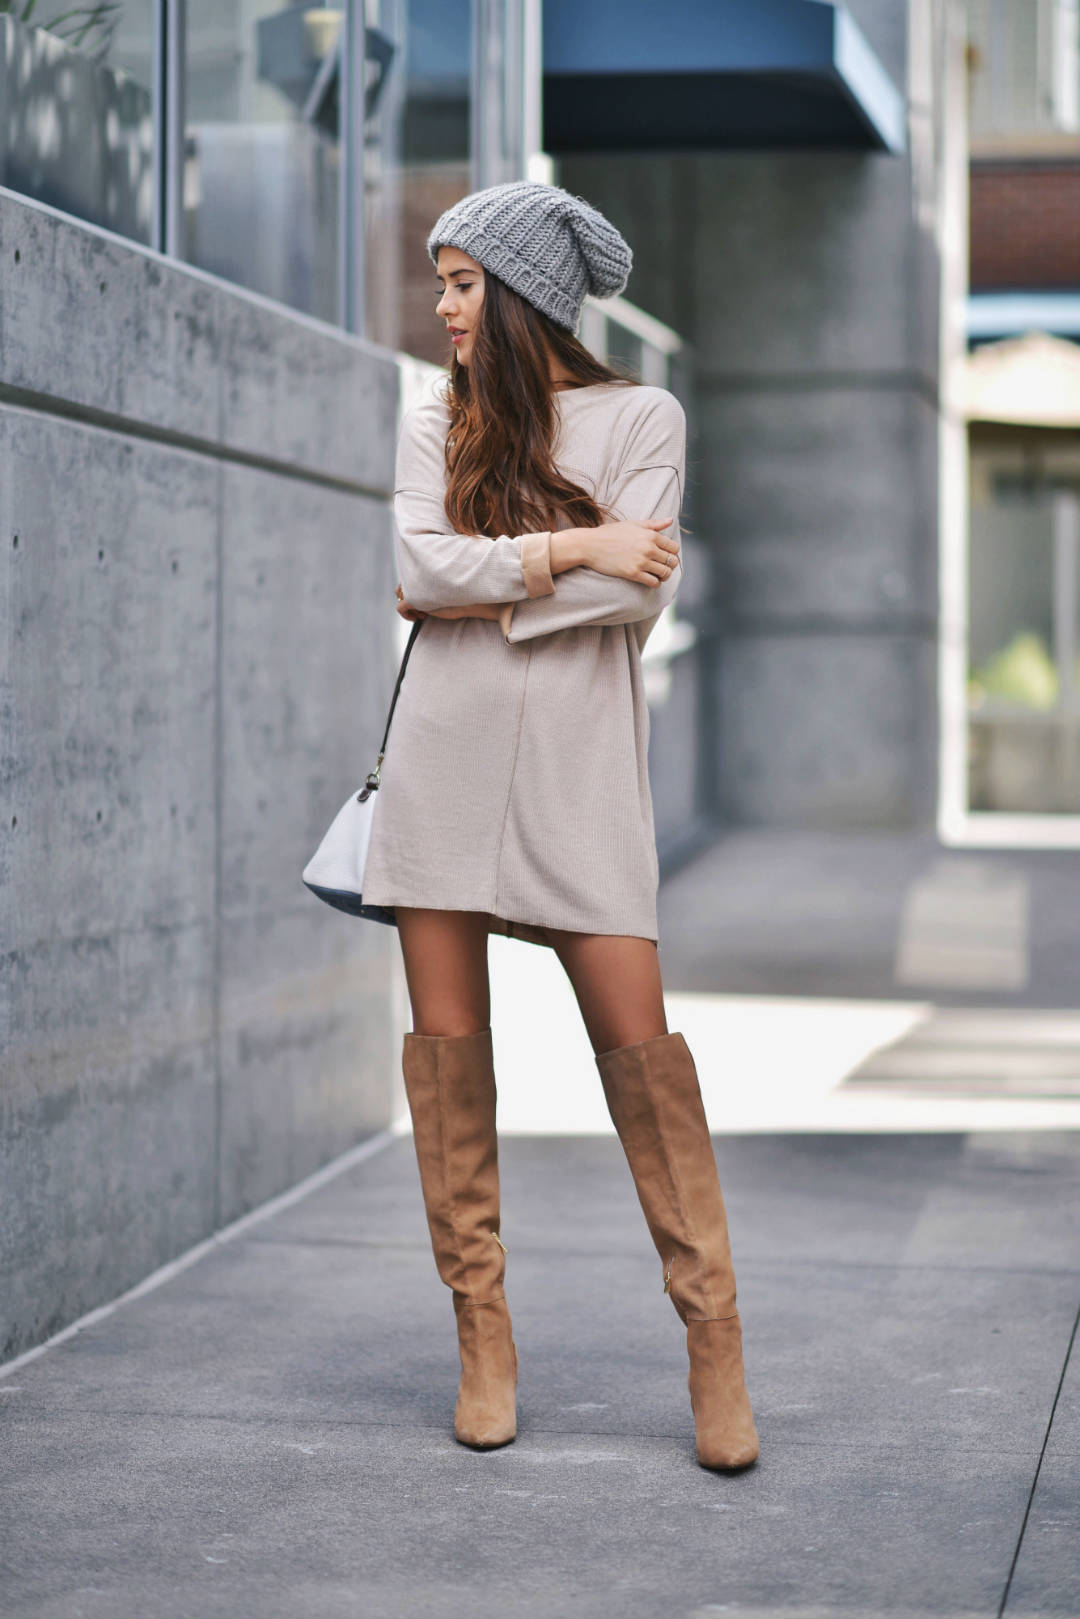 Wearing a simple t-shirt dress with over the knee boots is the perfect way to dress down your everyday spring style while retaining a degree of sopistication. Try this look with a beanie to steal Paola Alberdi's look. Dress: Zara, Shoes: Carolina Herrera.